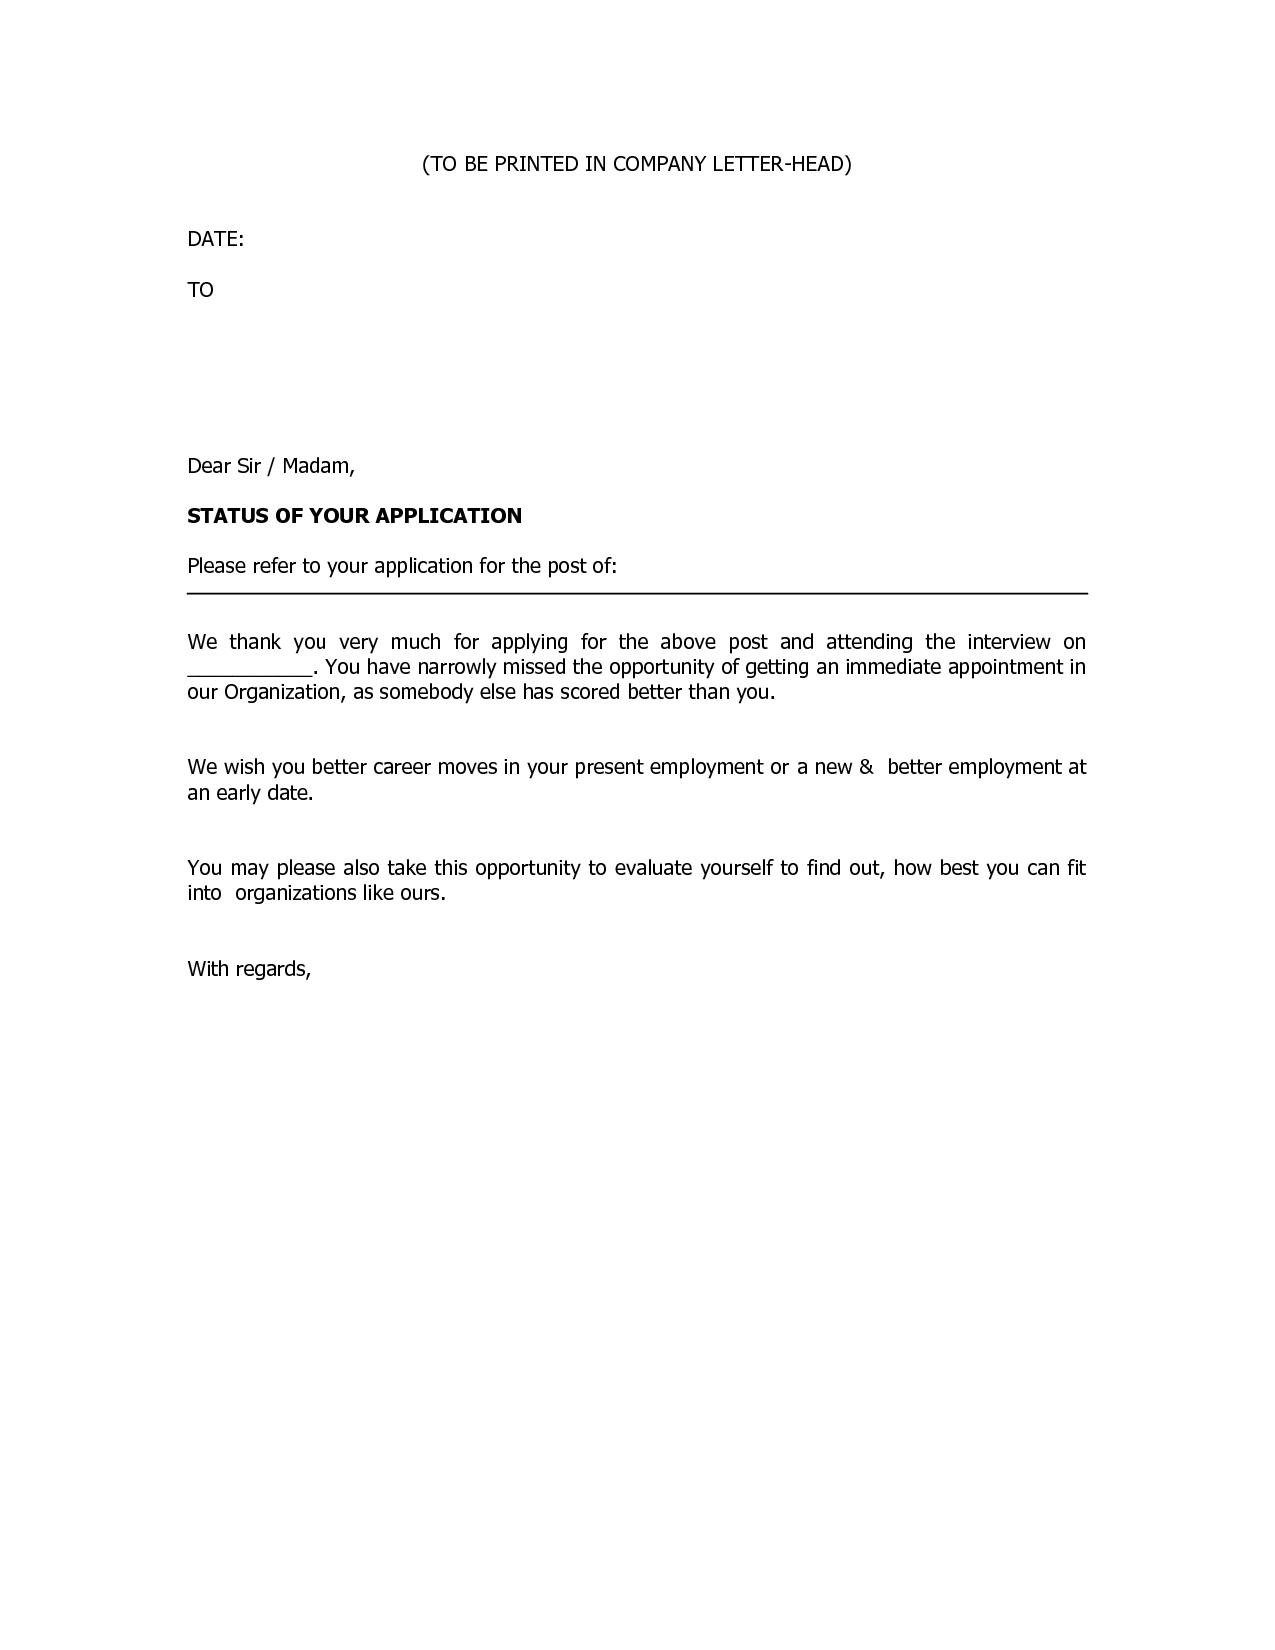 Business rejection letter rejection letters are usually addressed business rejection letter rejection letters are usually addressed to applicants who are not qualified for the job we offered how to write rejection thecheapjerseys